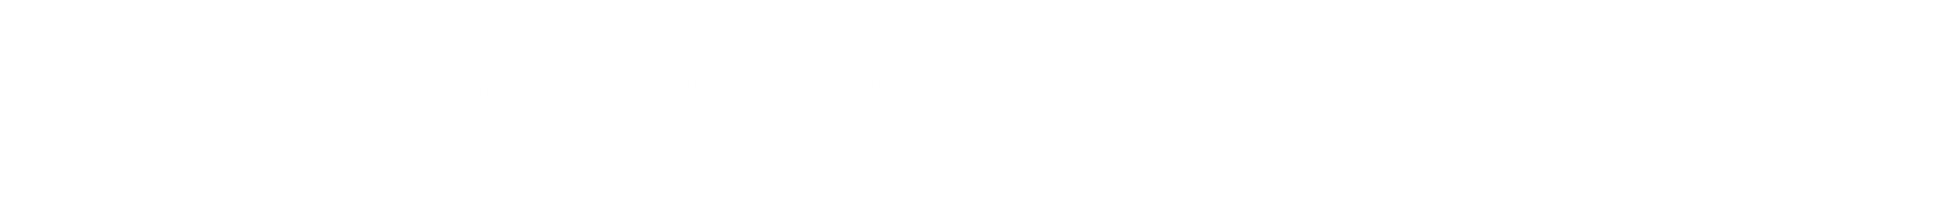 e-Learning Gulf Aviation Academy